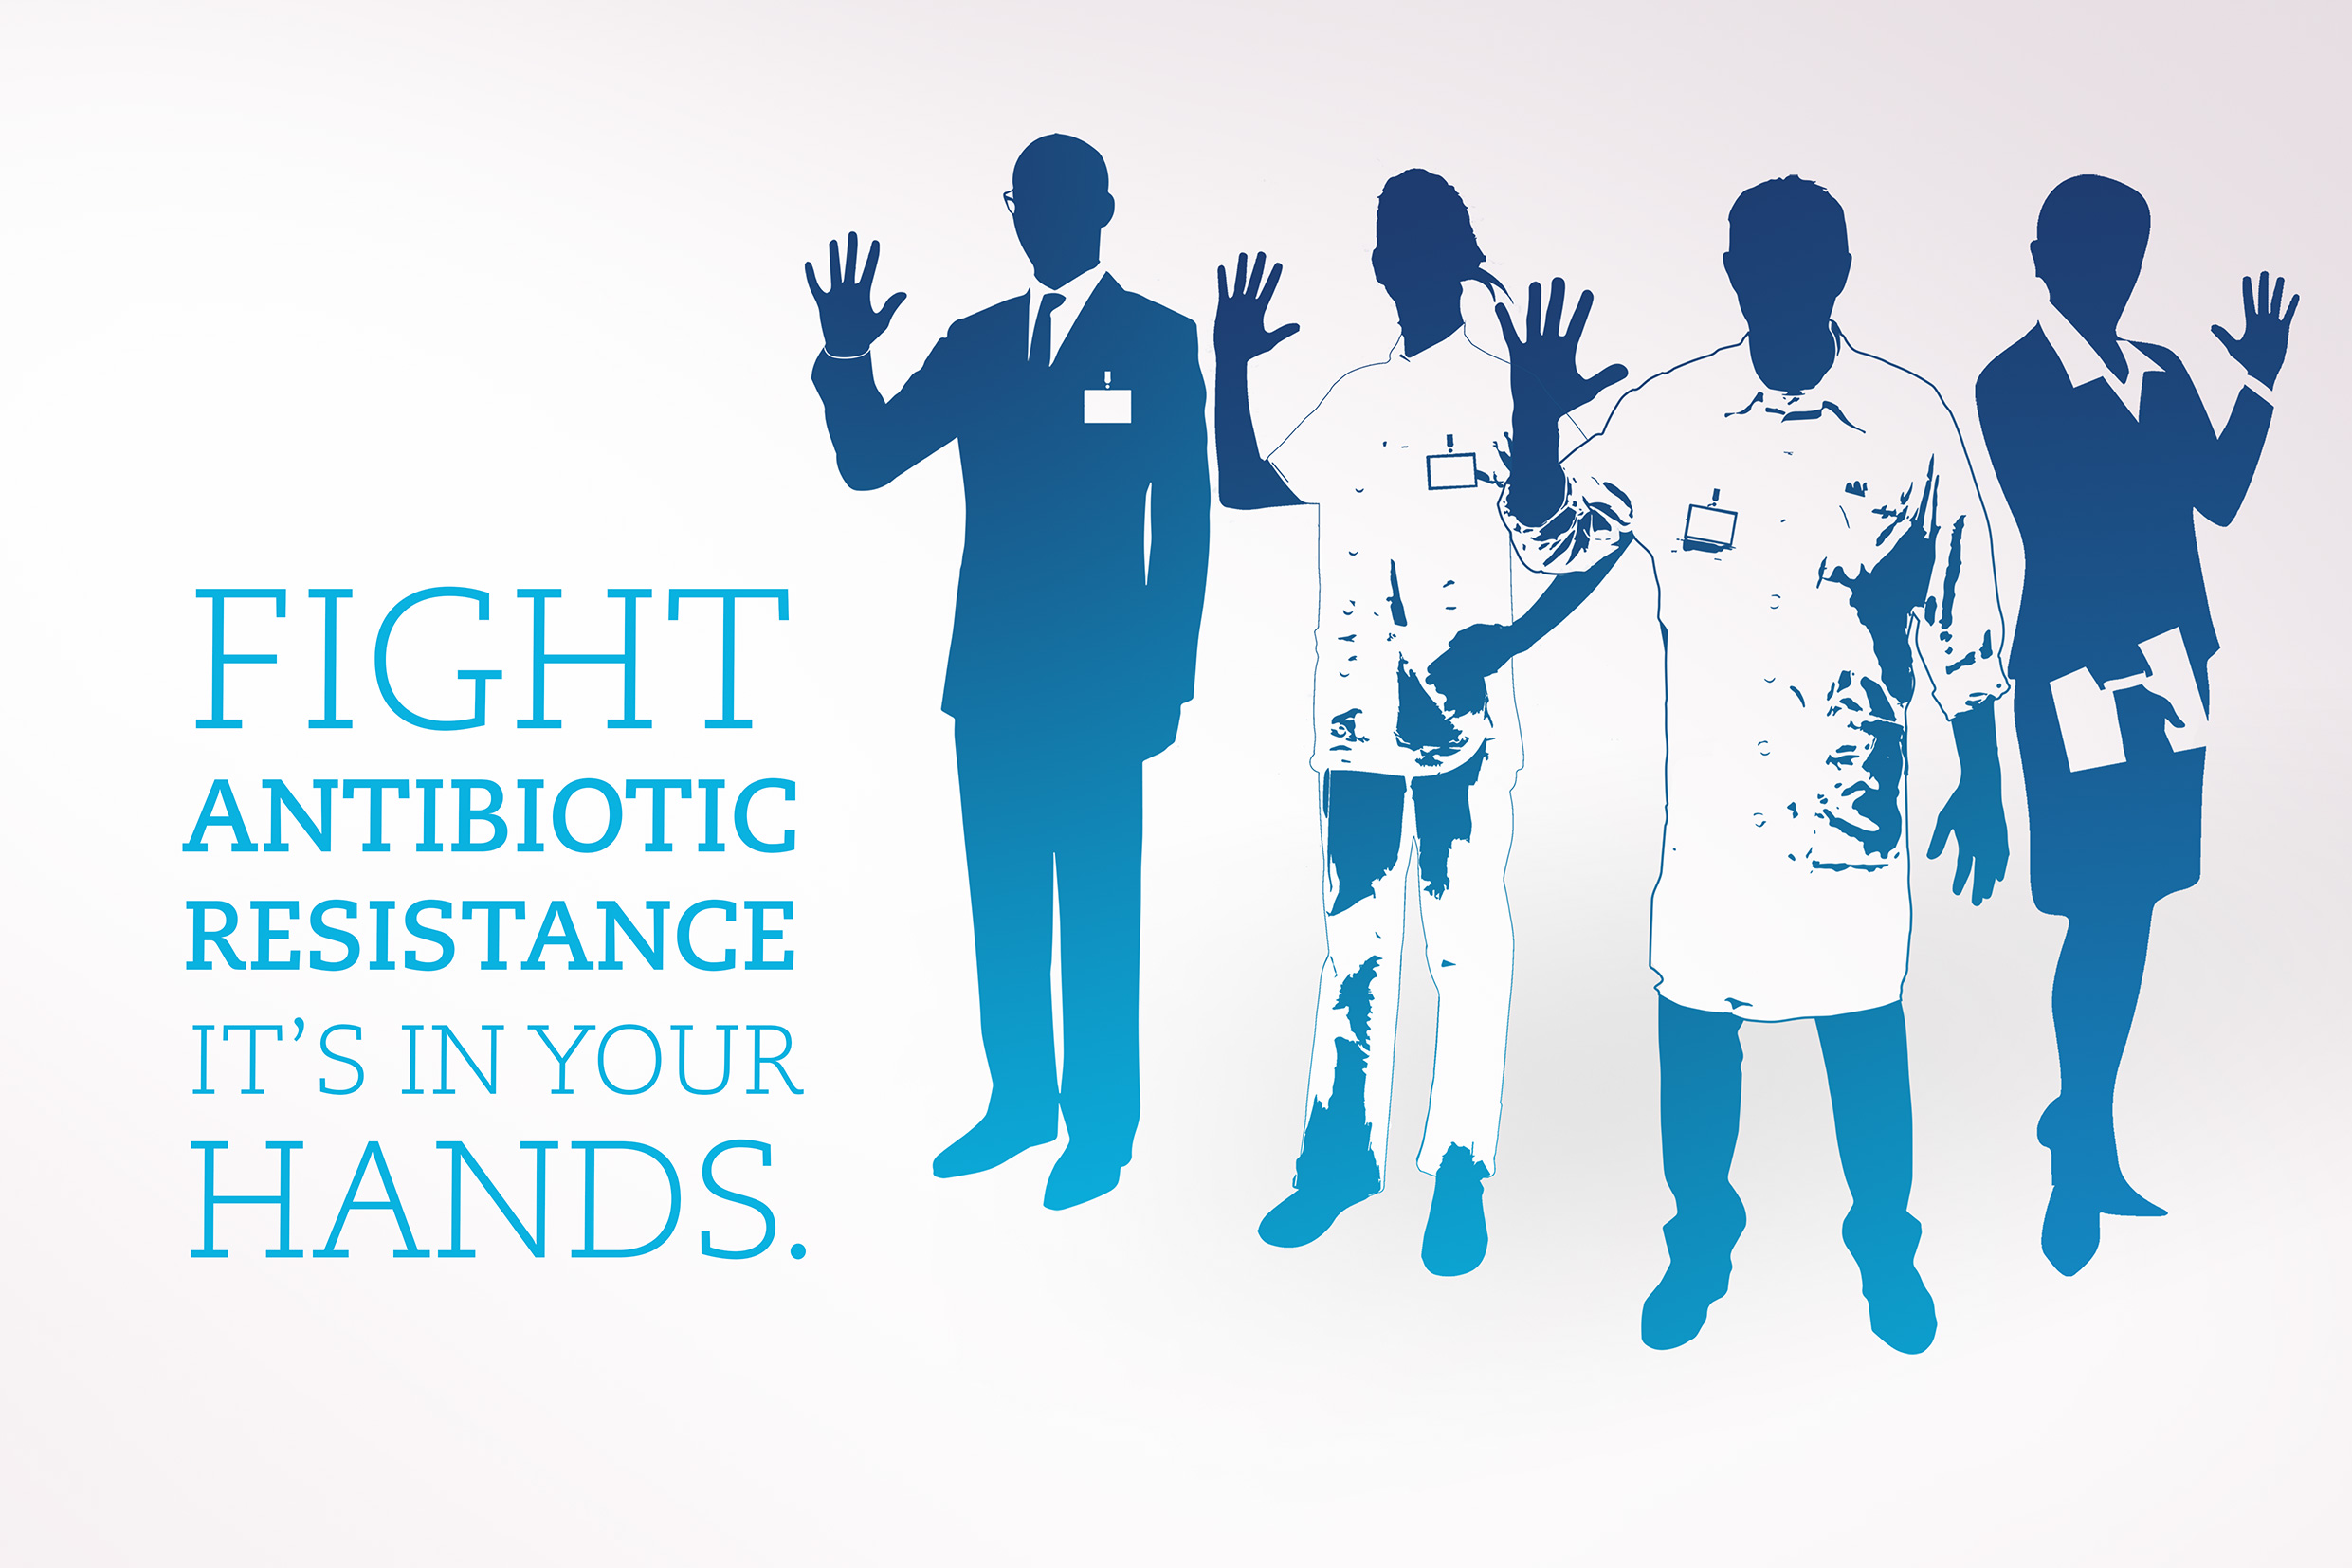 Watch Join the Fight to Save Antibiotics video